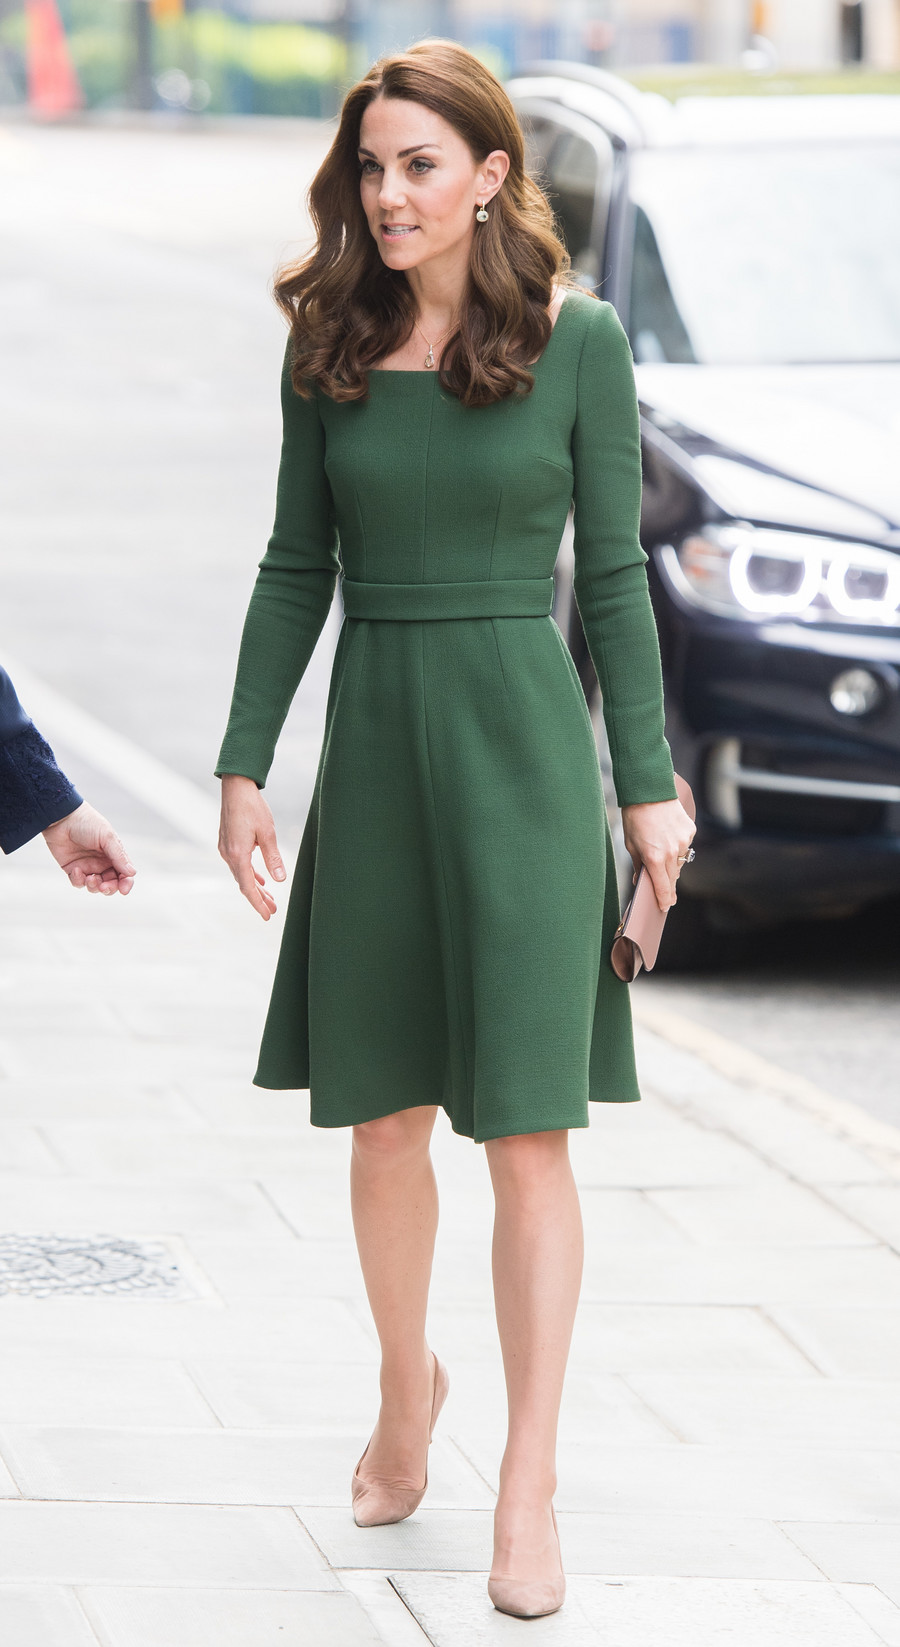 Kate Middleton / Samir Hussein / GettyImages